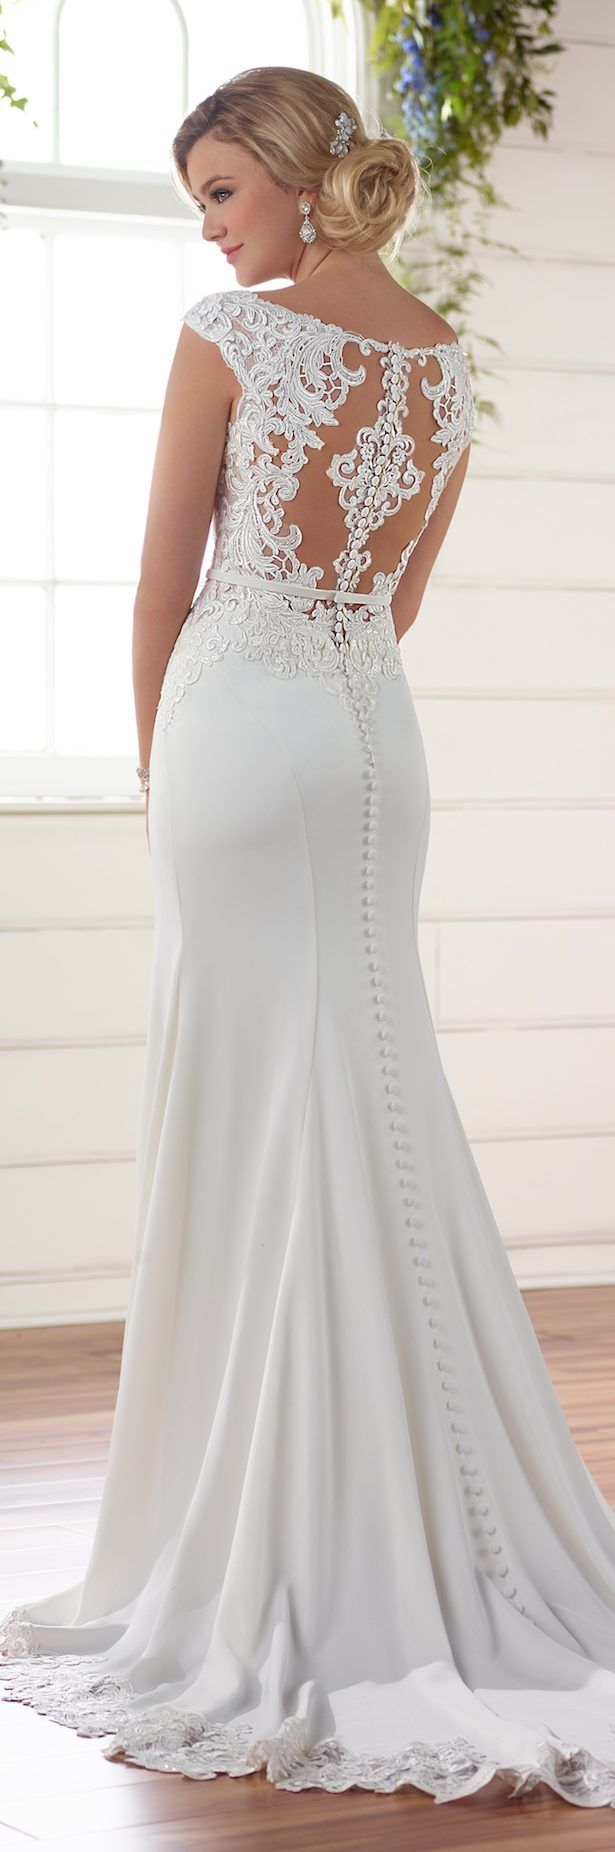 1472 best weddingstyling images on Pinterest | Homecoming dresses ...